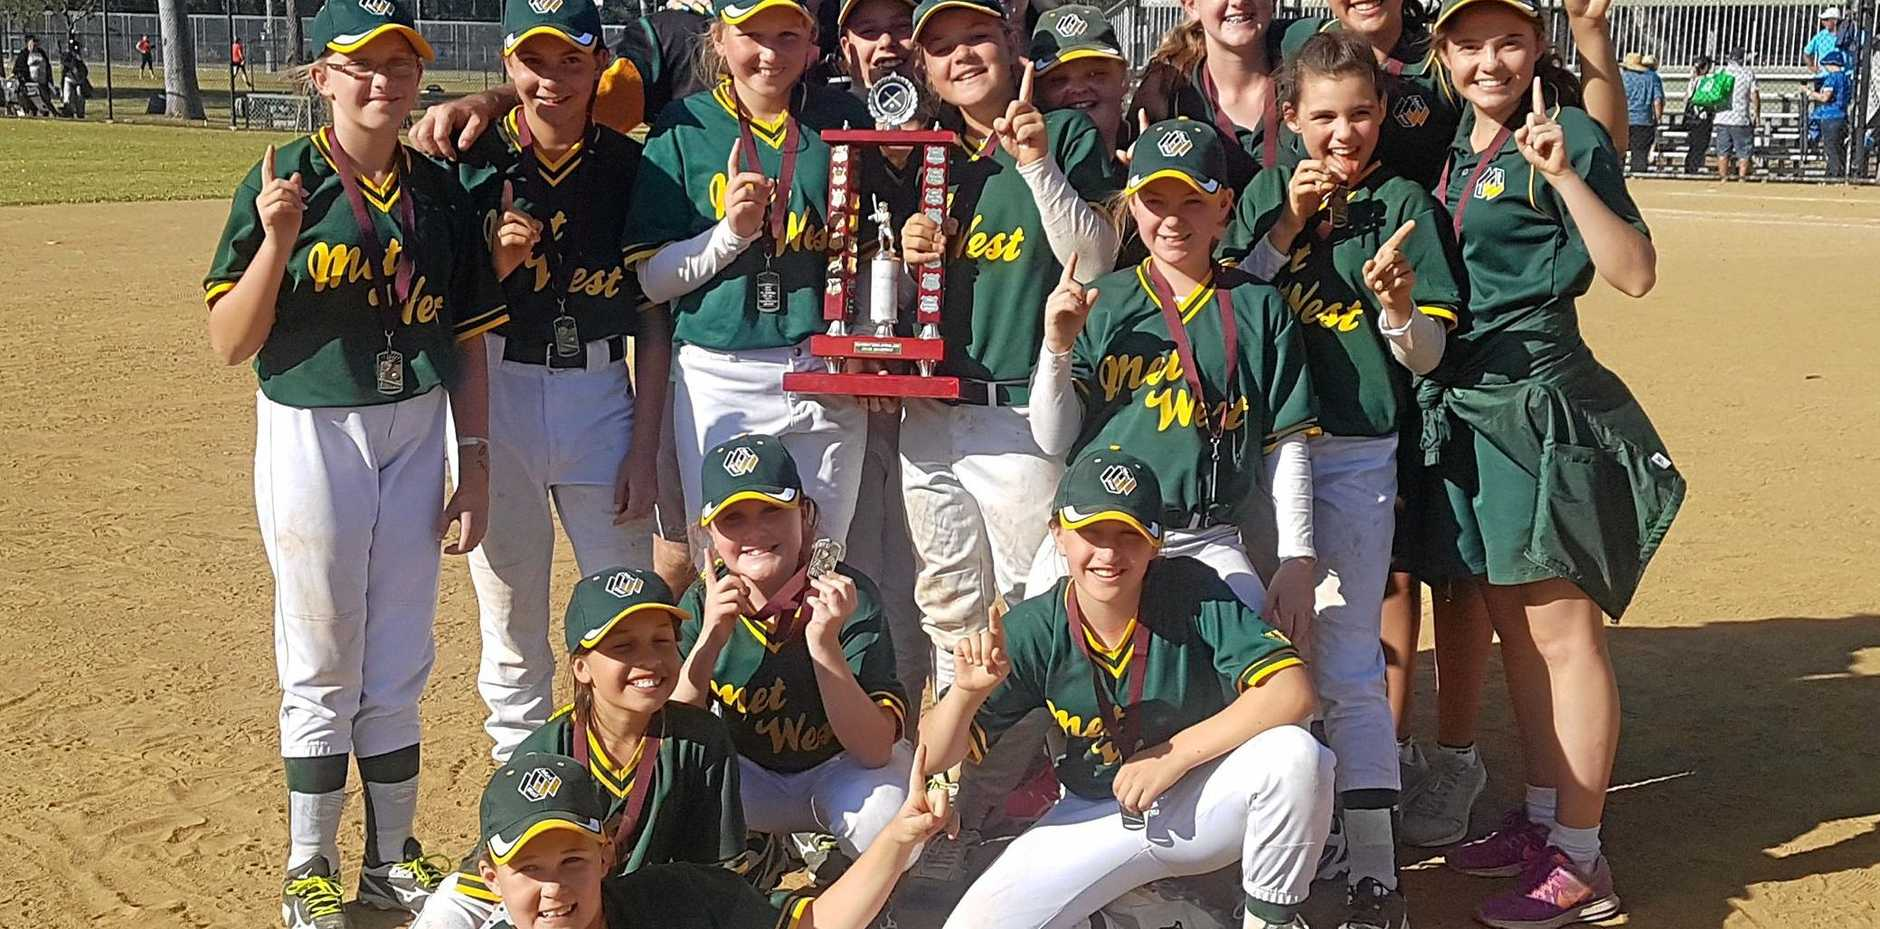 FINALLY: The Met West Under 12 team won 10 of 11 games to take out the Softball State Championships at Redlands.